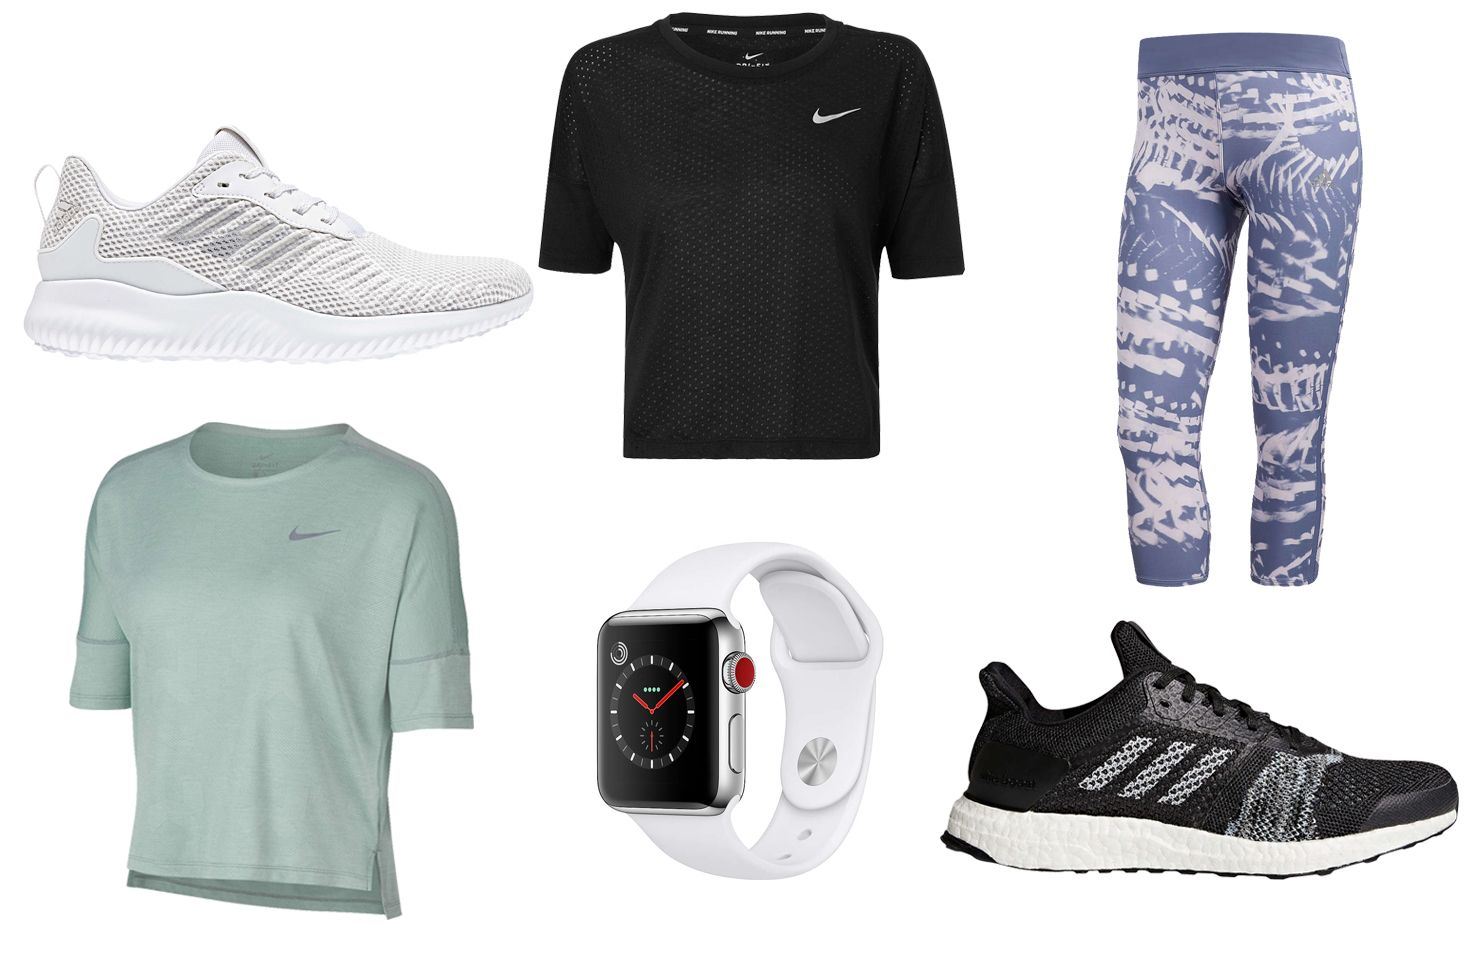 100% authentic 72d96 b6f52 Cheap running gear – what to buy in the John Lewis sale